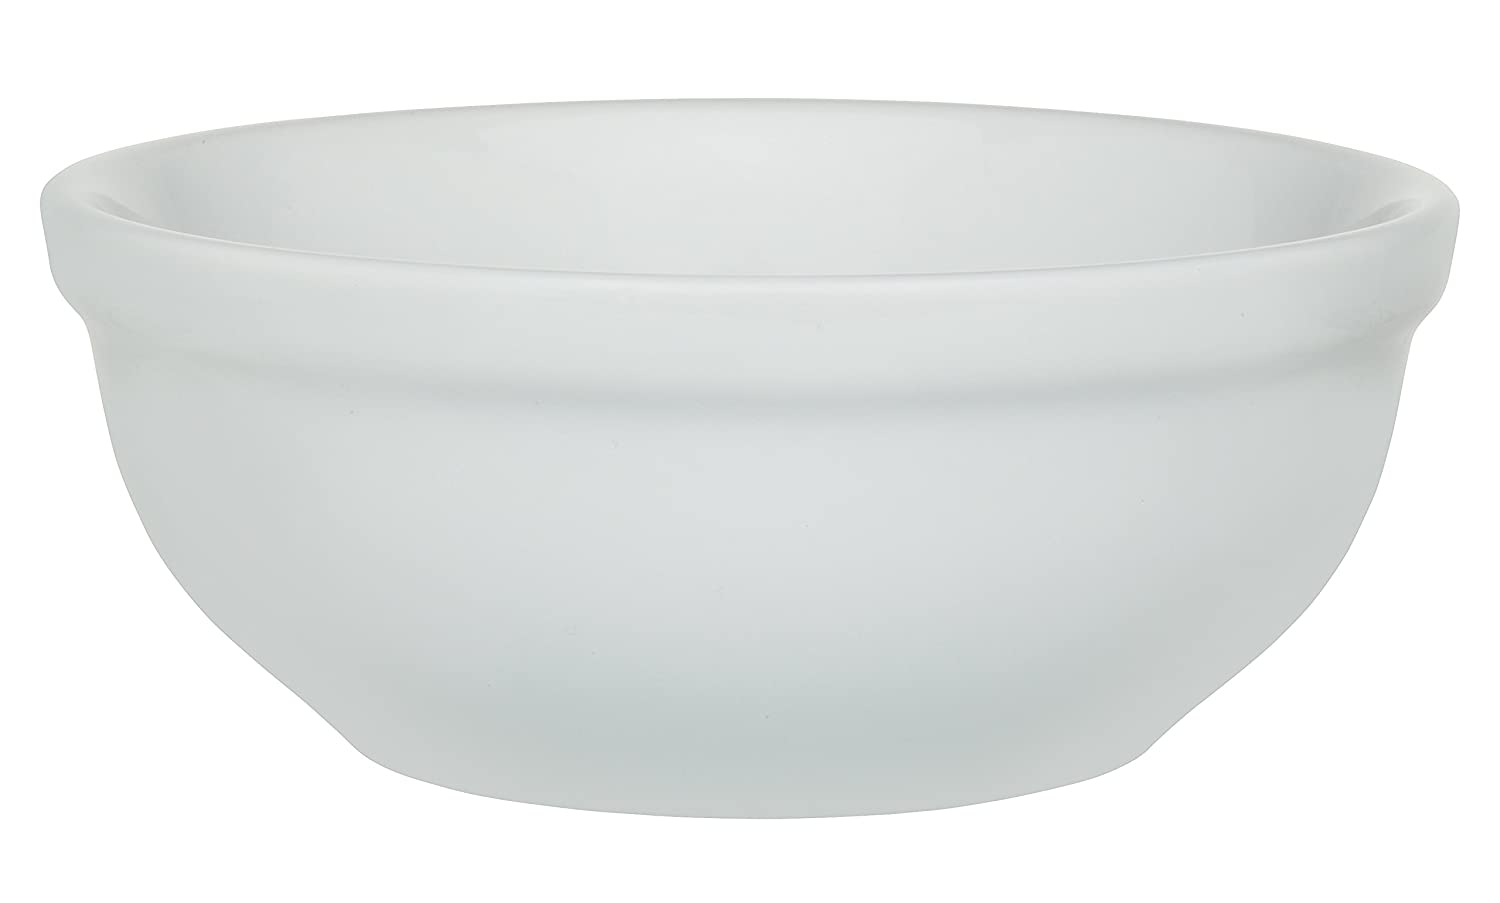 Fine White Porcelain 16-ounces NT792-HIC Set of 4 HIC Chili Soup and Cereal Bowls